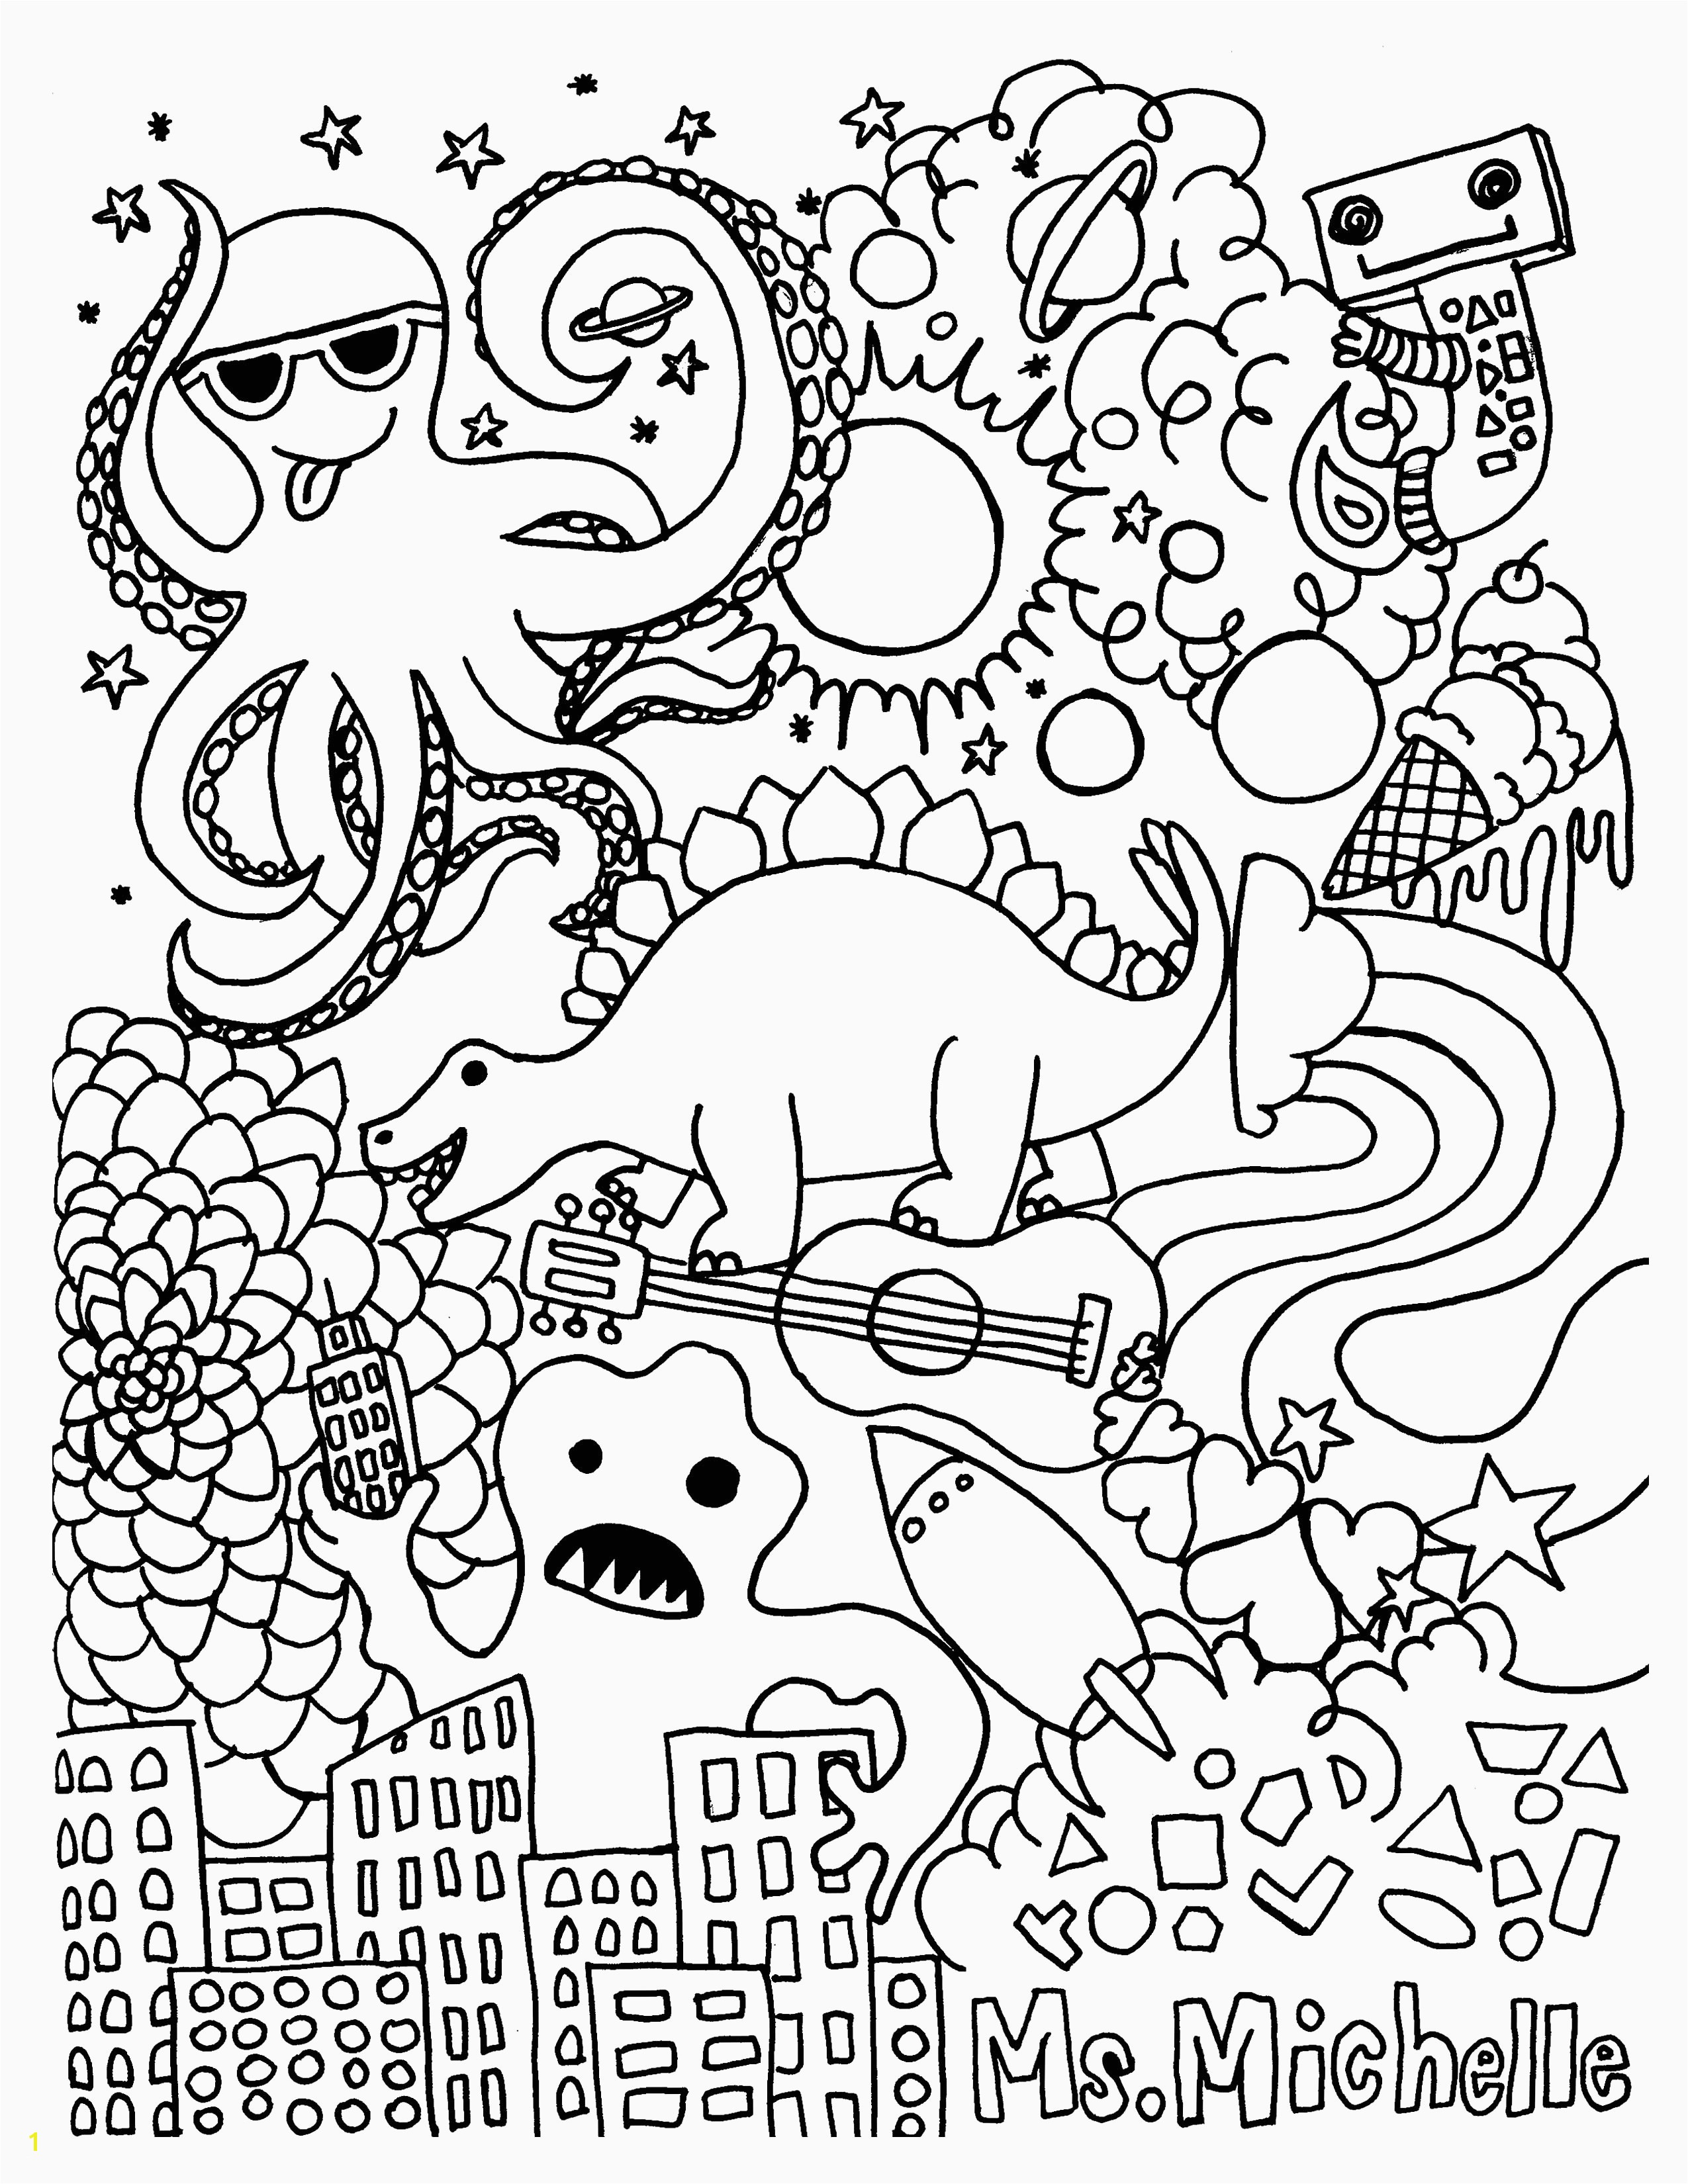 Best Inappropriate Coloring Pages For Adults More Image Ideas